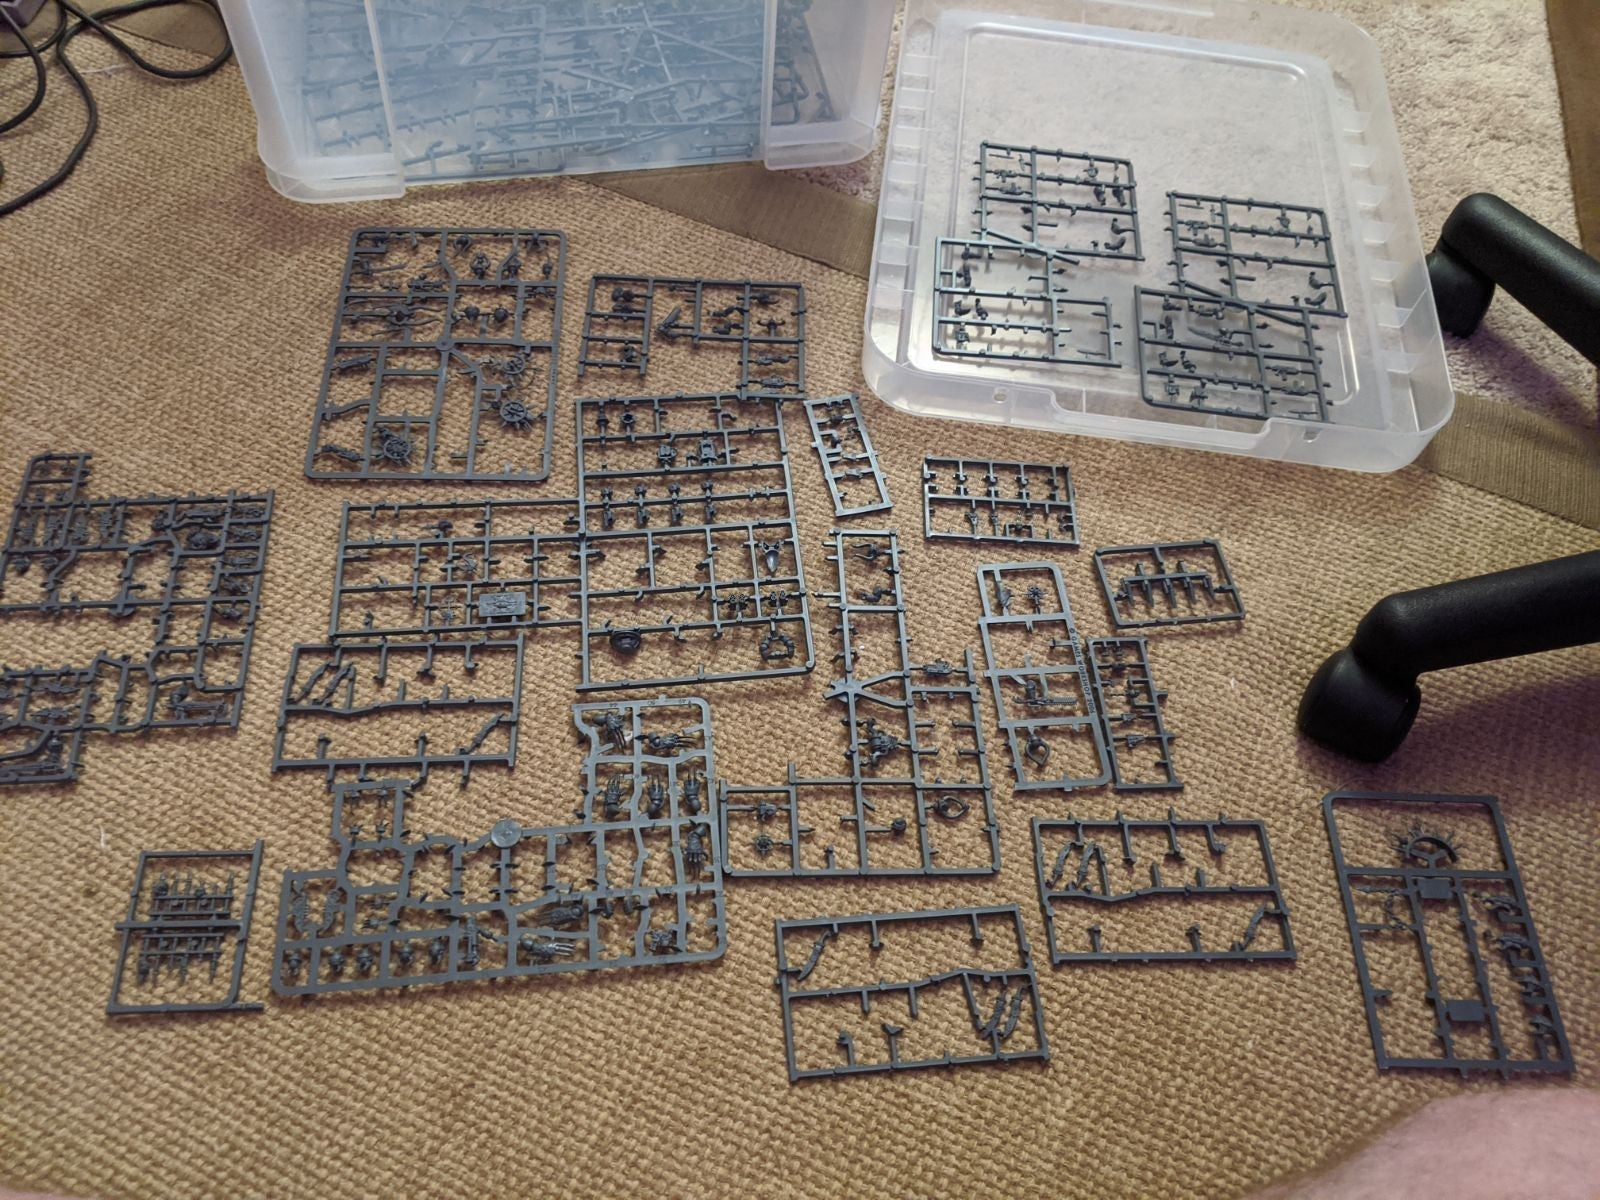 Warhammer 40k incomplete chaos sprues